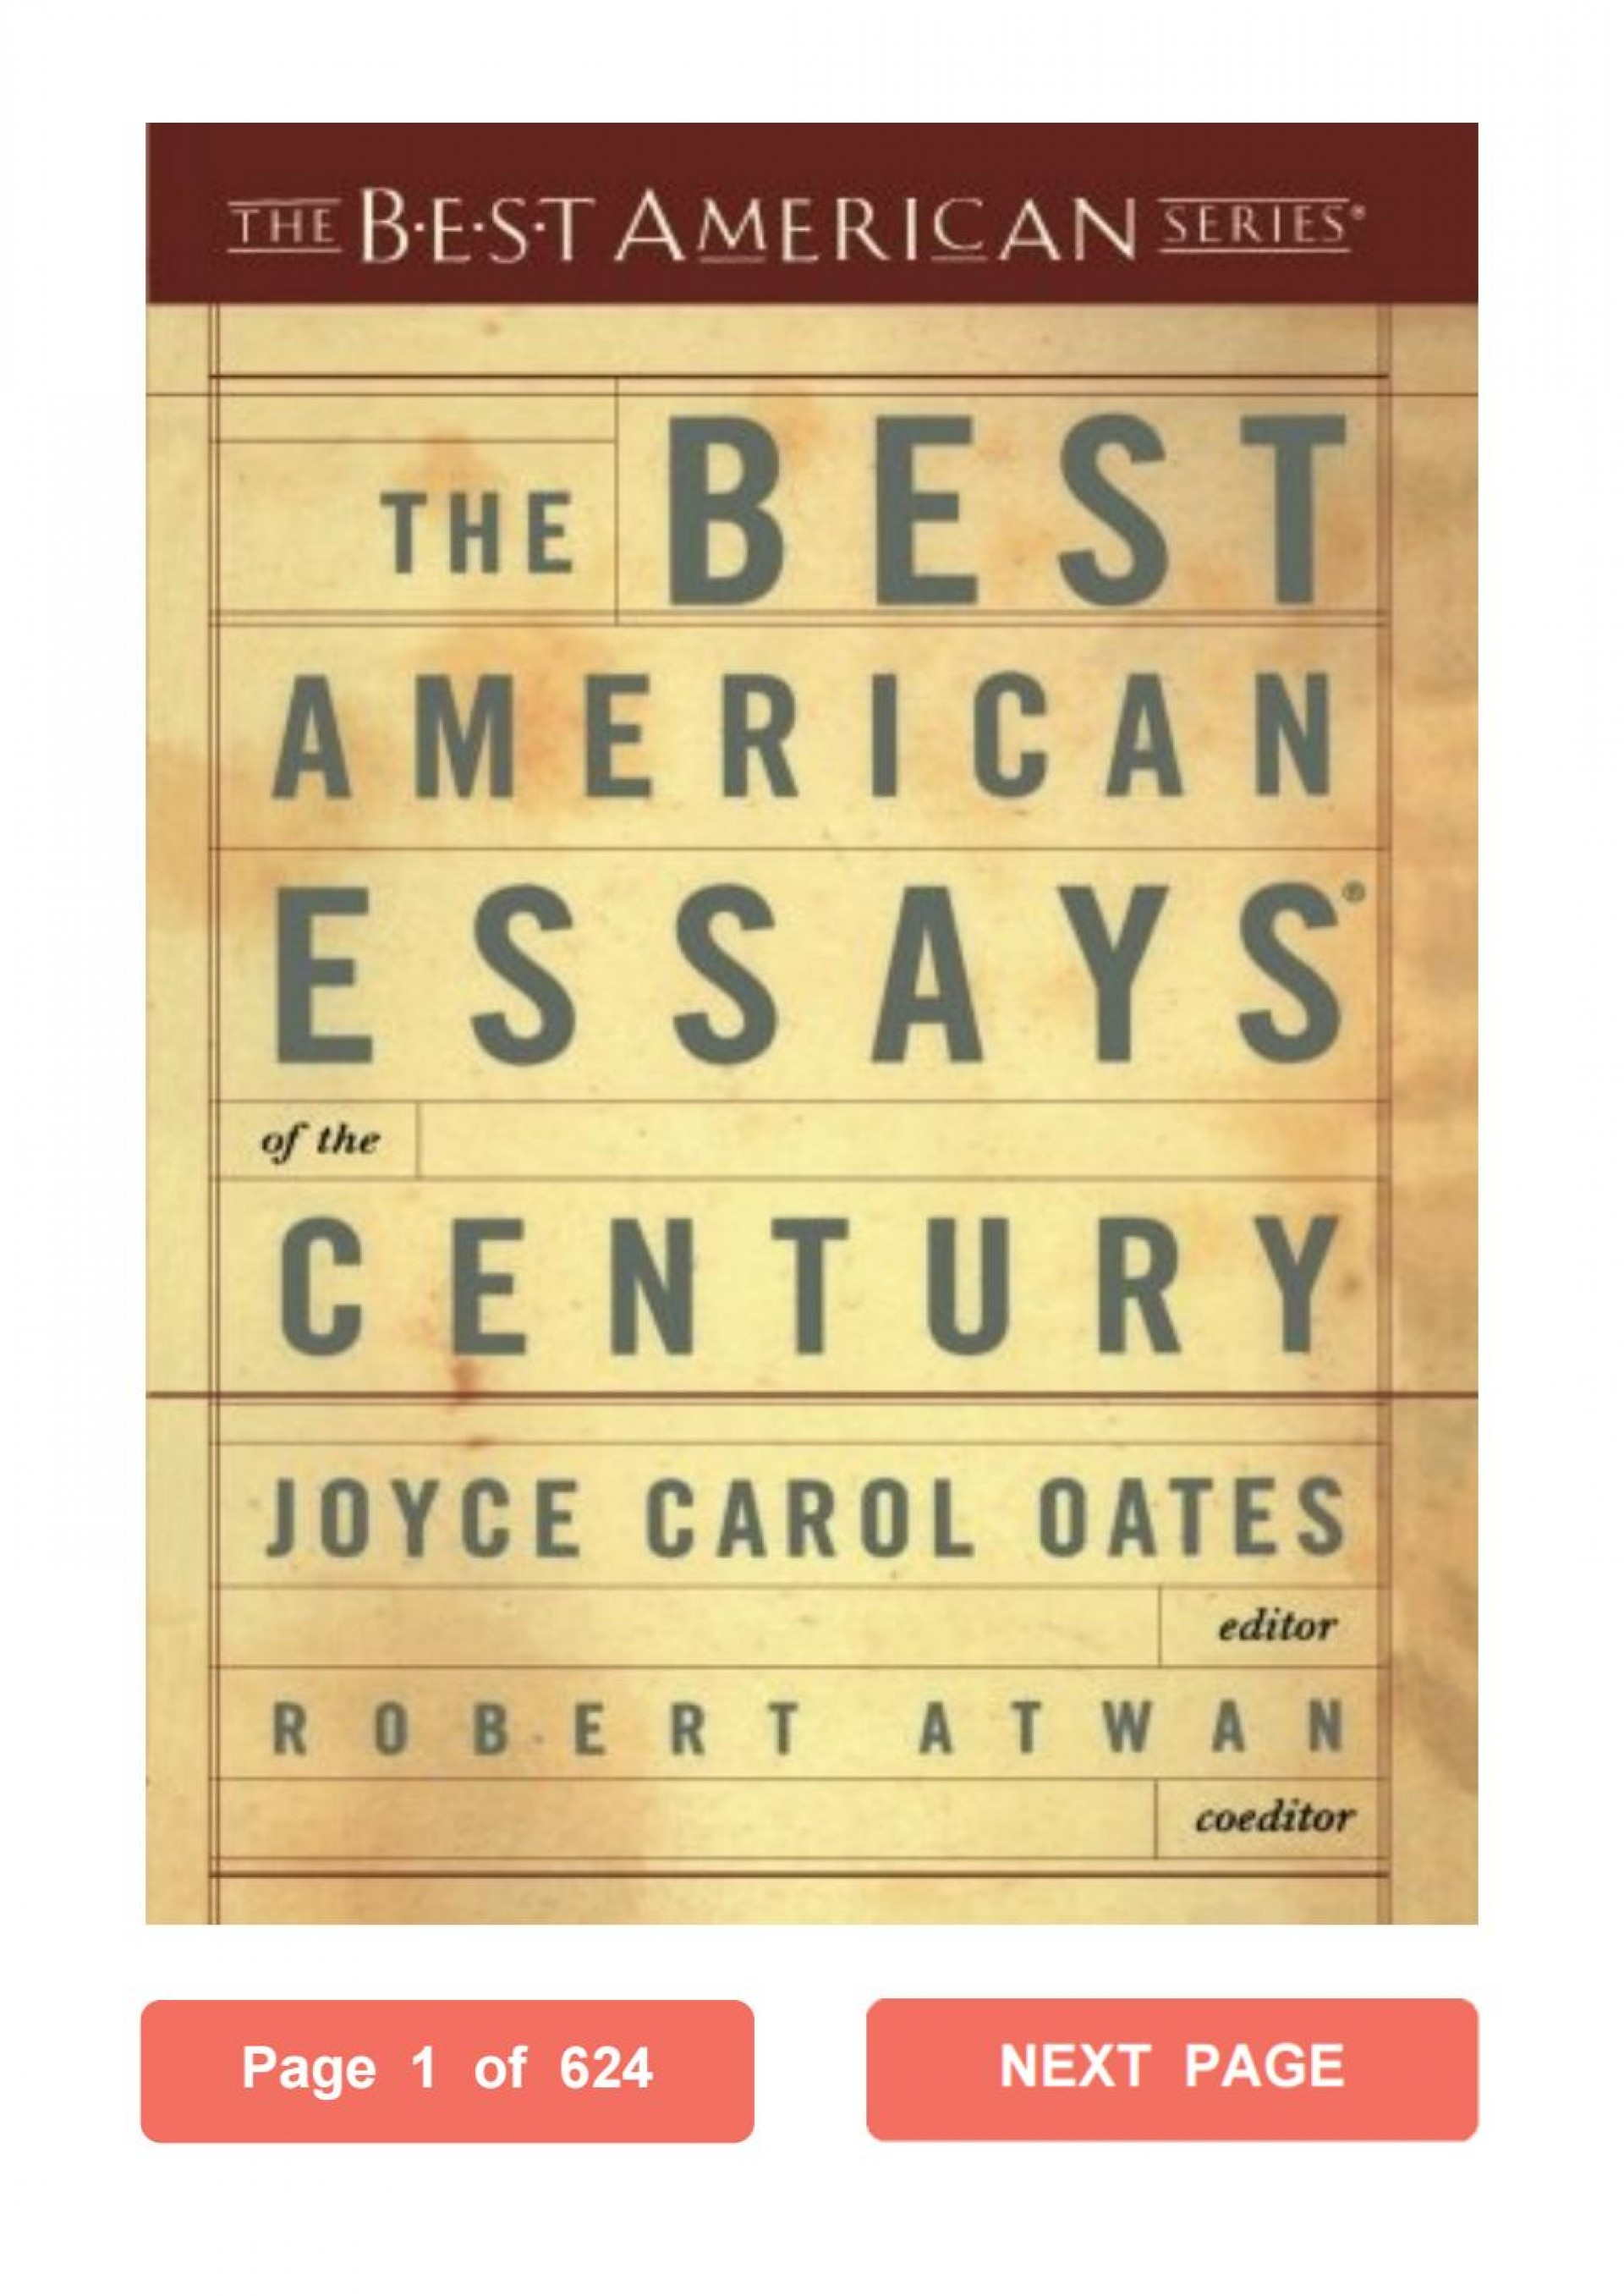 026 Essay Example The Best American Essays Of Century Page 1 Imposing Contents Summaries 1920